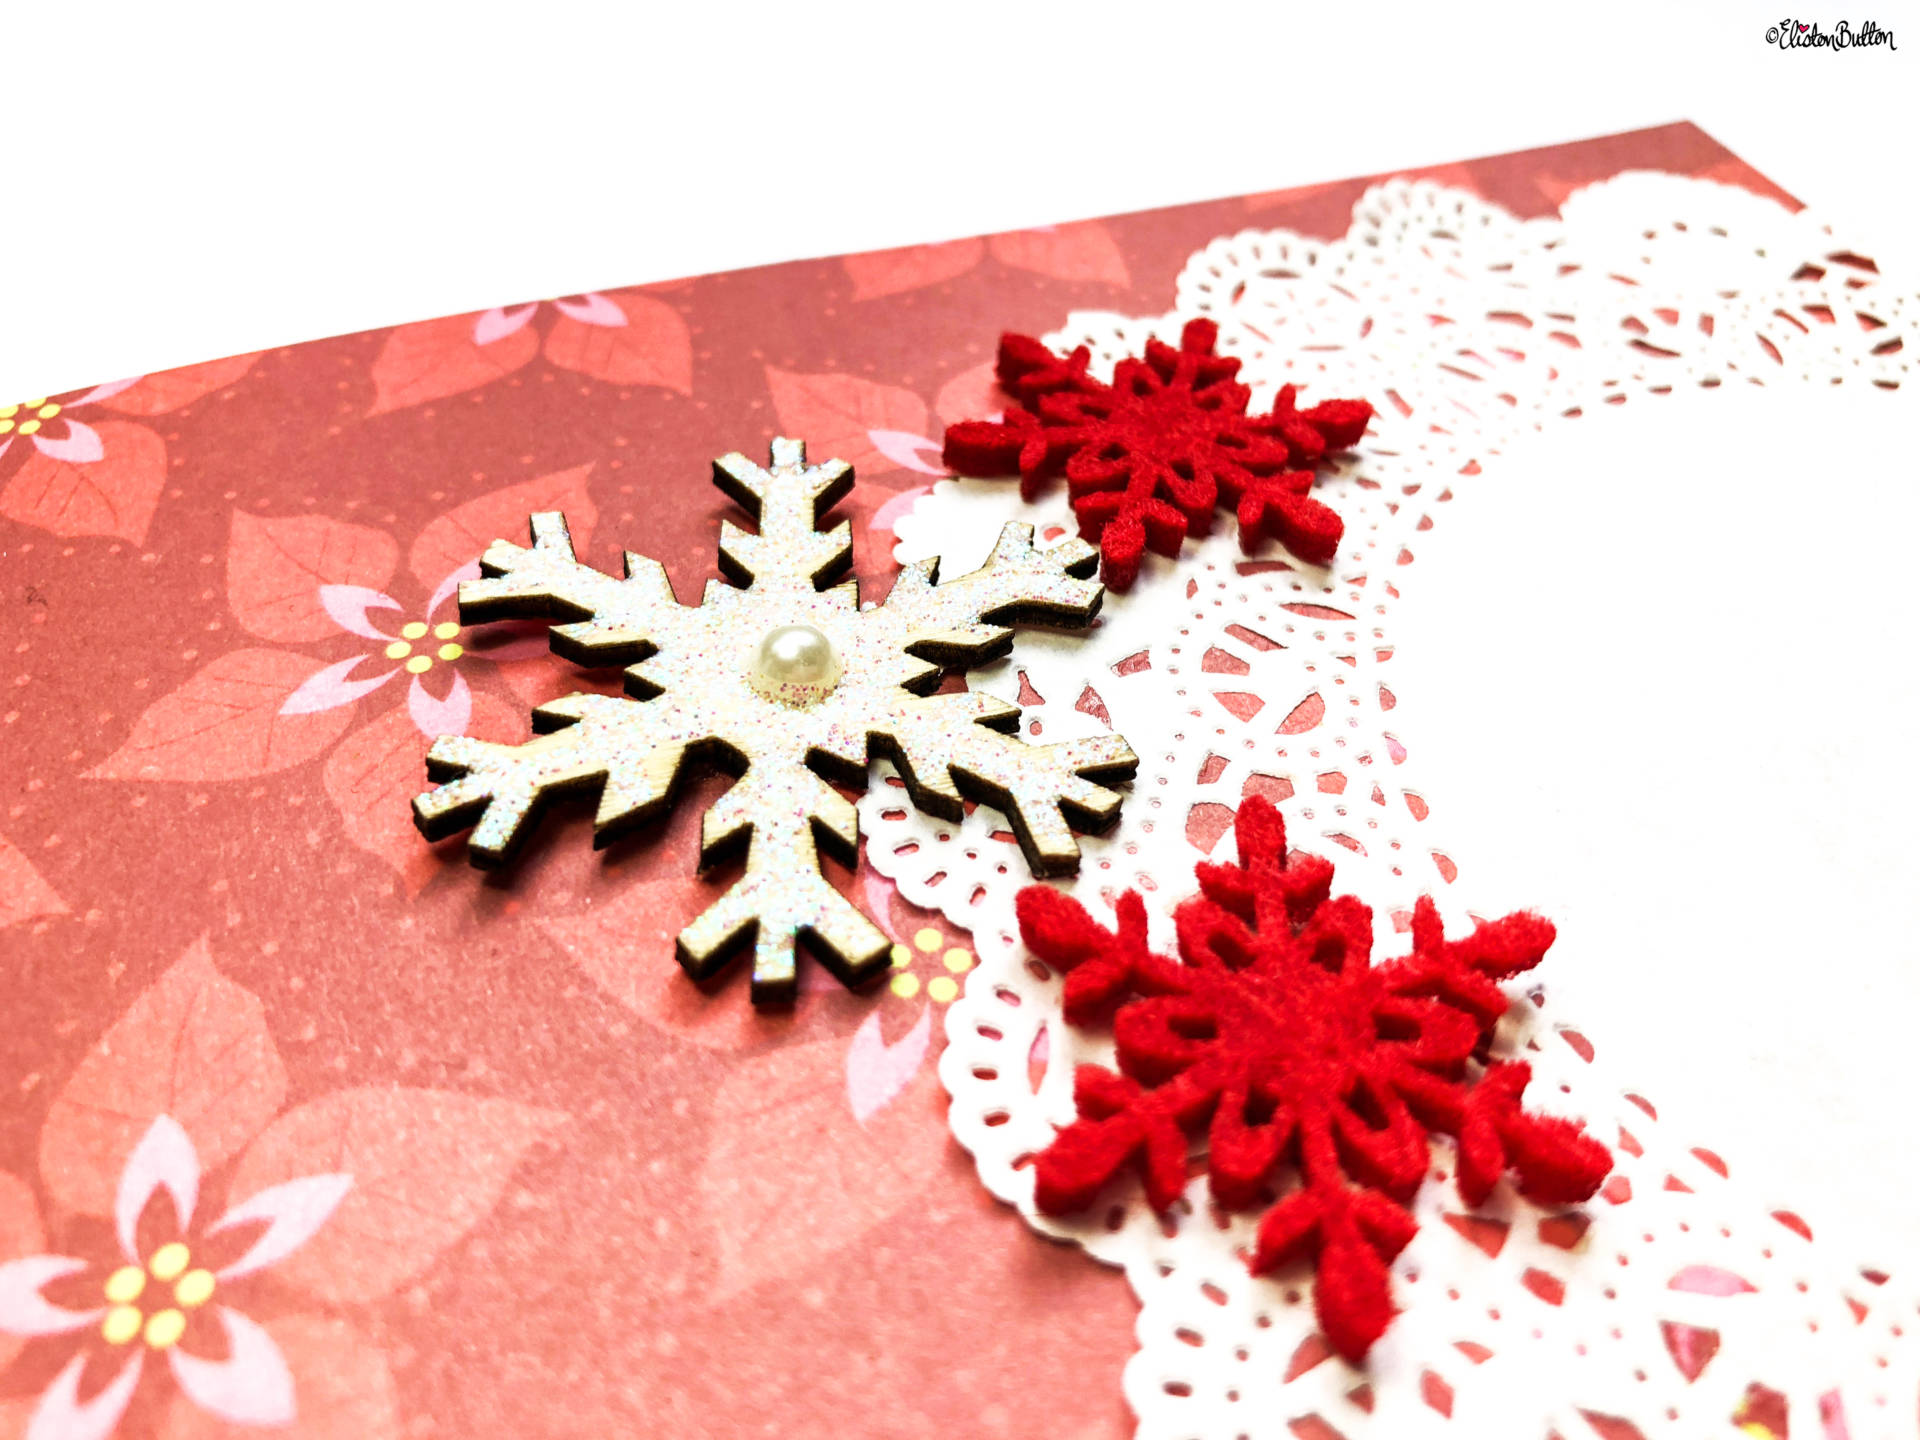 A Creative Christmas Card - Scrapbook Paper, Embellishments and Doilies Close Up by Eliston Button - Tutorial Tuesday - A Creative Christmas Card *Video* Tutorial at www.elistonbutton.com - Eliston Button - That Crafty Kid – Art, Design, Craft & Adventure.